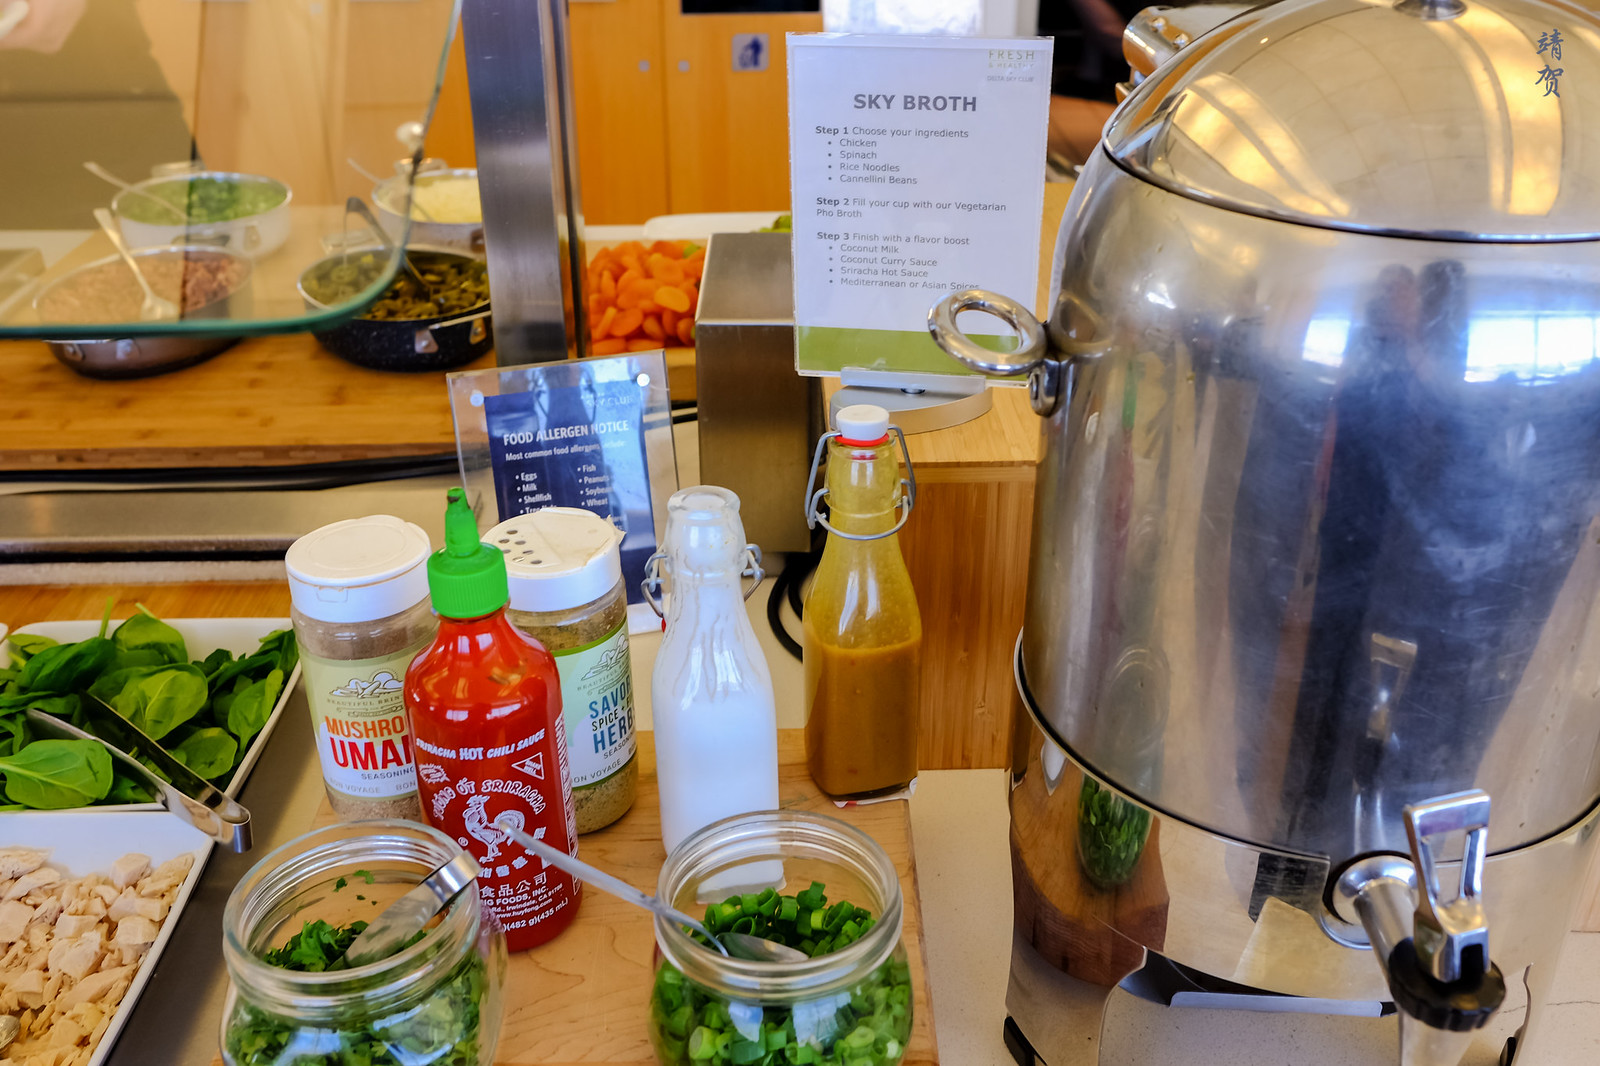 Sky Broth station in the buffet